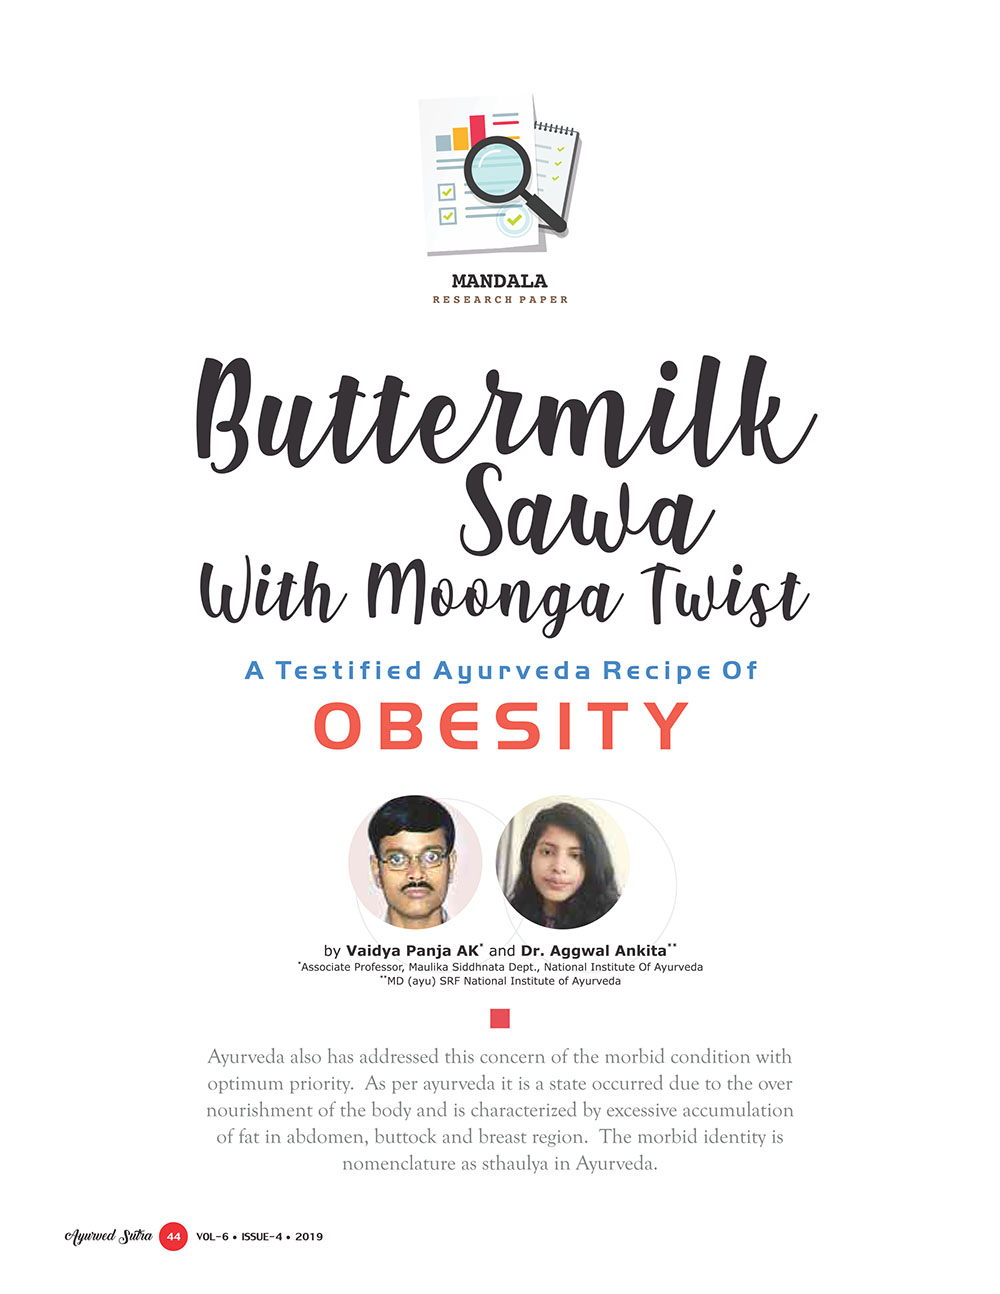 Ayurvedsutra Vol 06 issue 04 46 - Buttermilk Sawa With Moonga Twist - A Testified Ayurveda Recipe Of Obesity